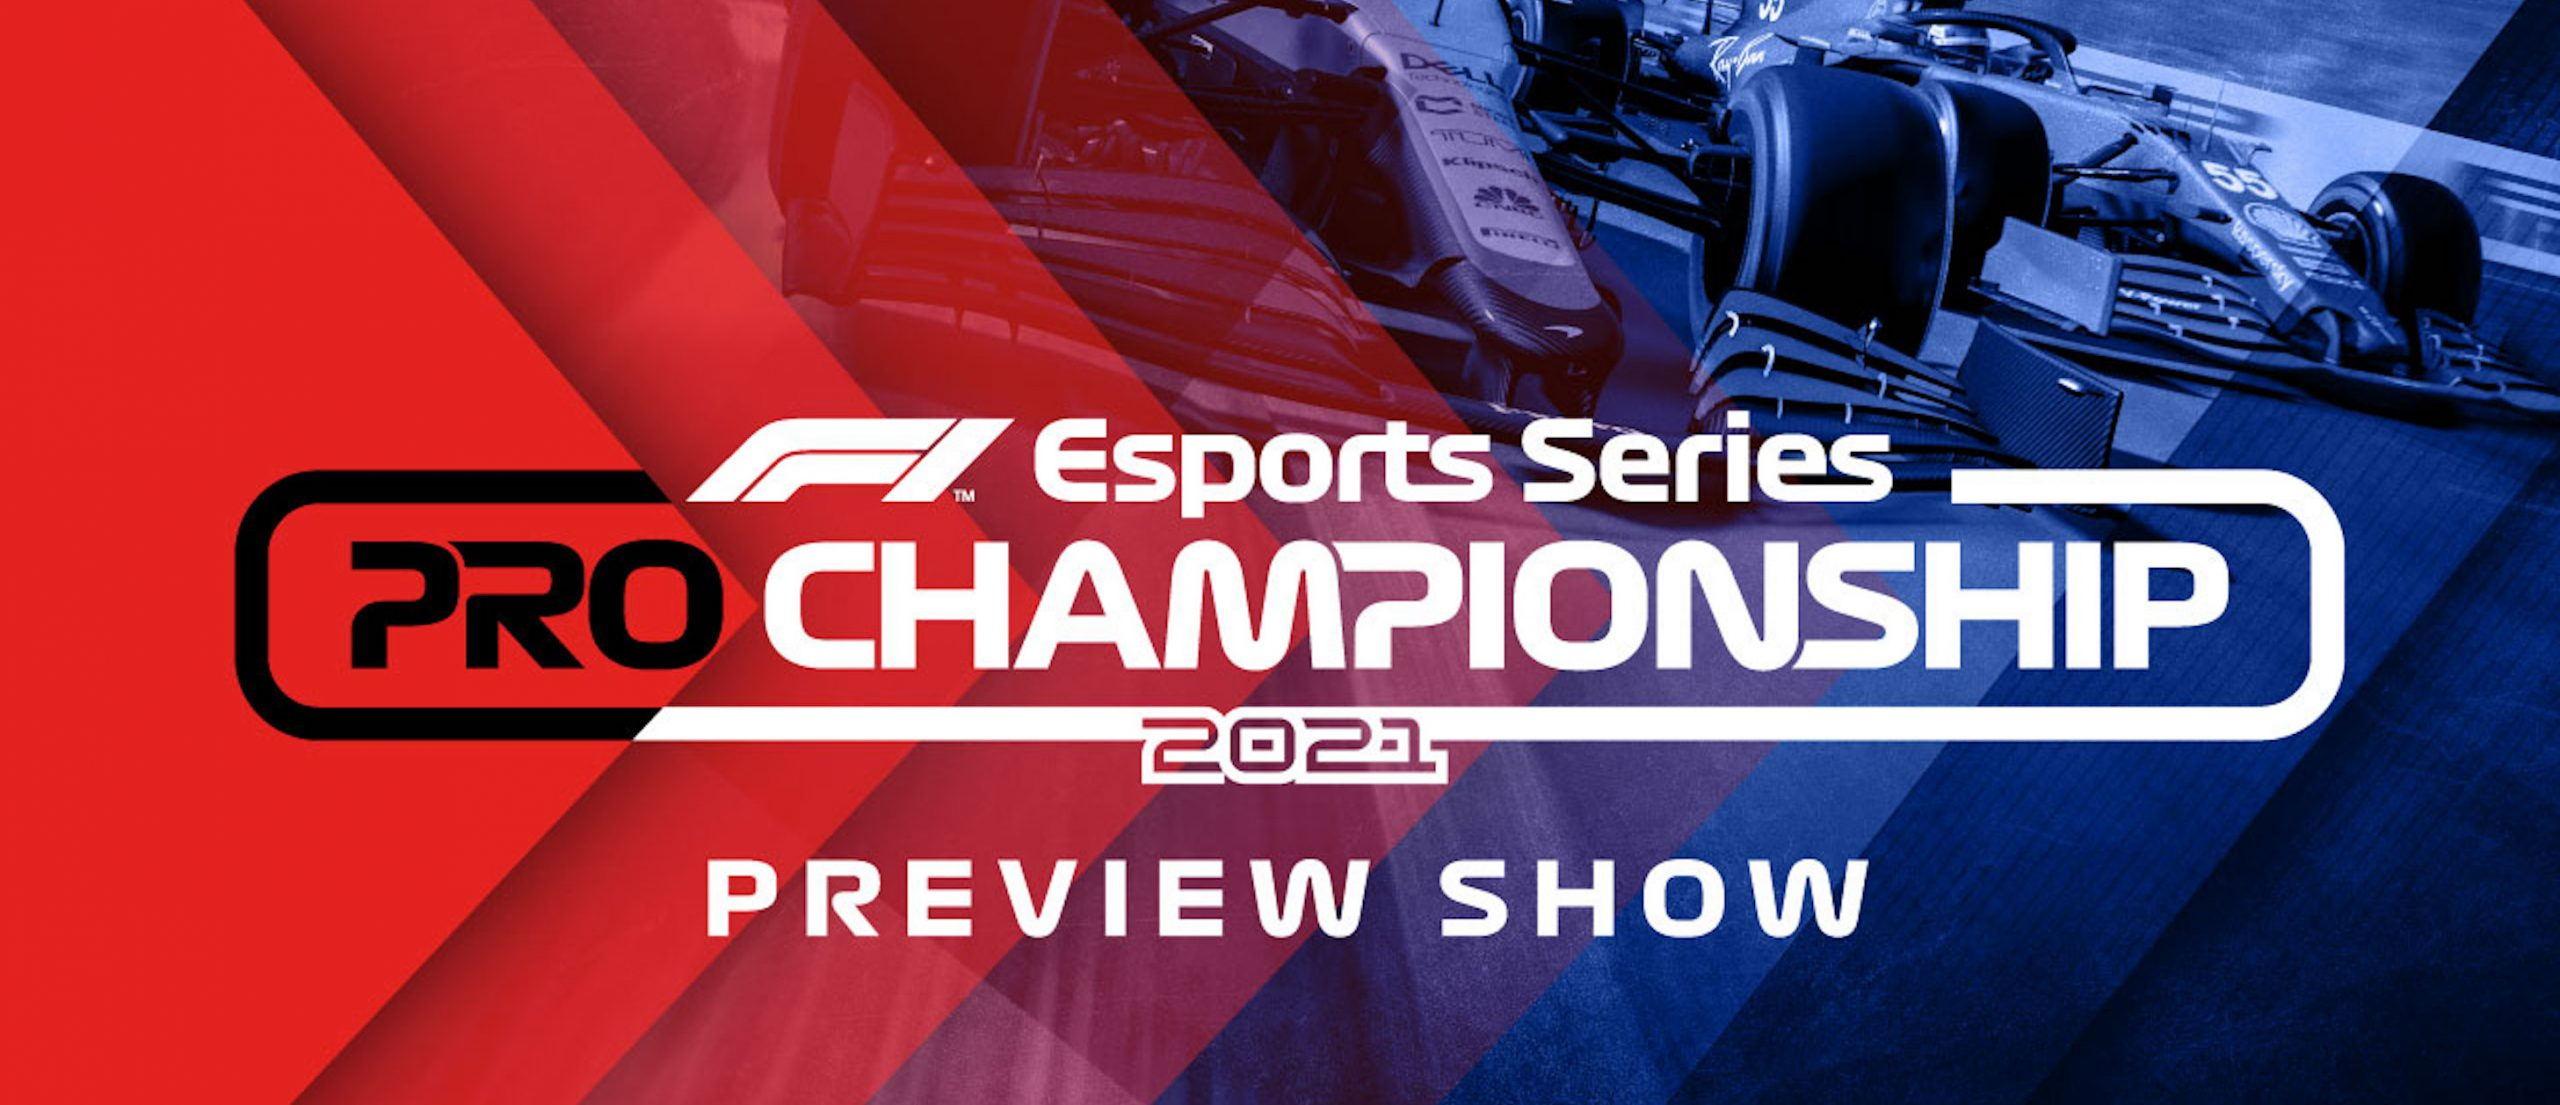 F1 Esports Series Preview Show presented by Aramco Is Almost Here!